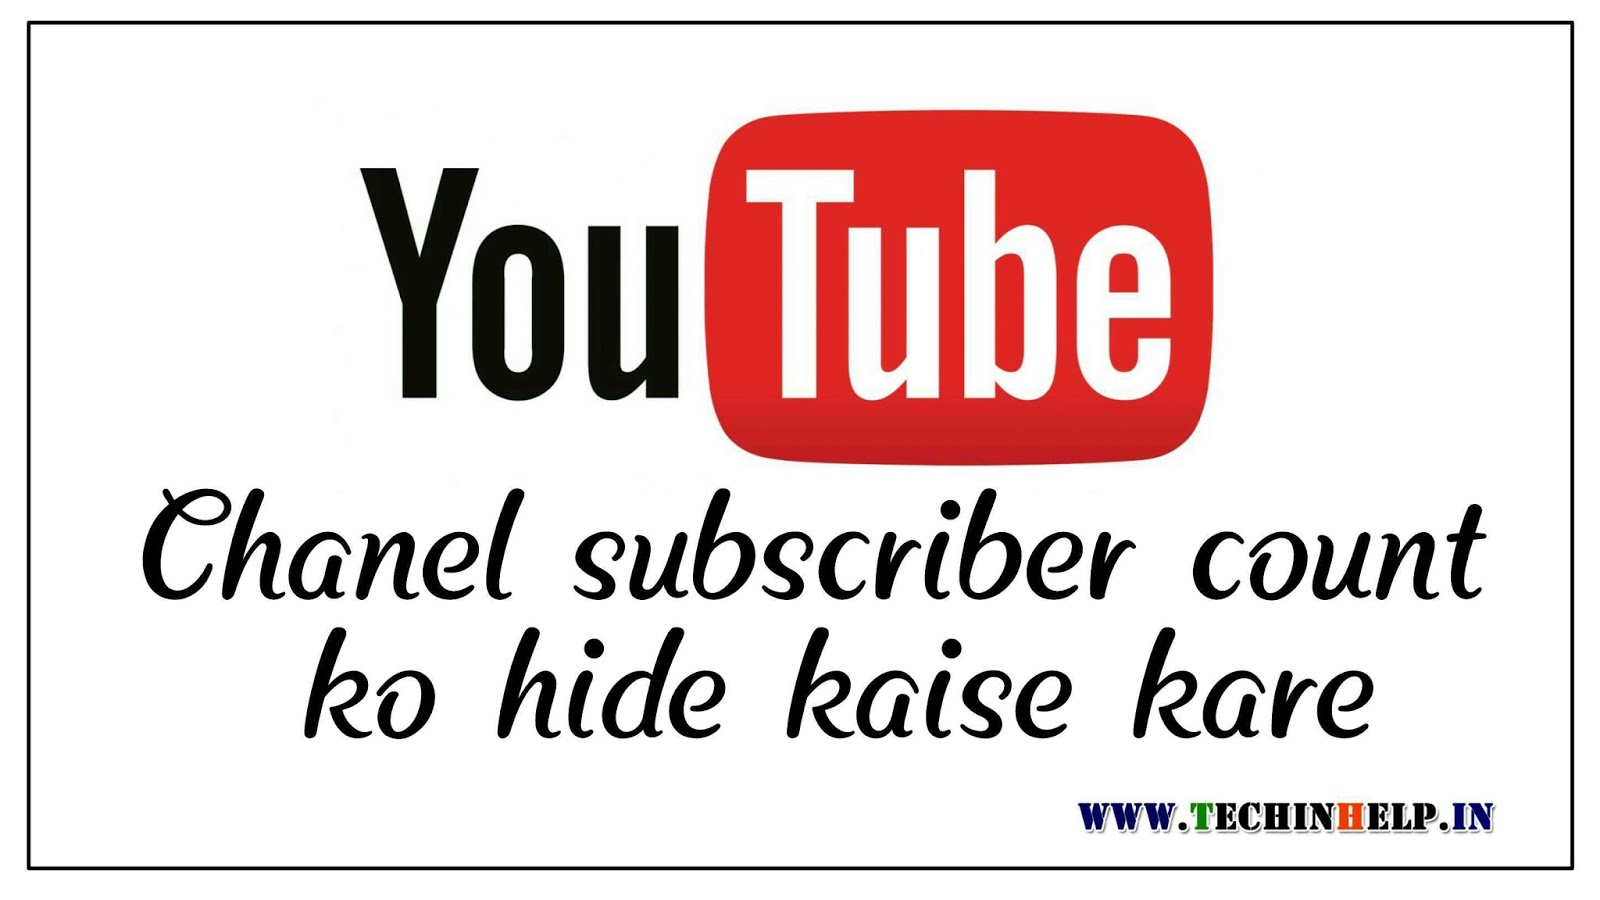 YouTube Chanel Subscriber Count Hide Kaise Kare - Blog4Hindi